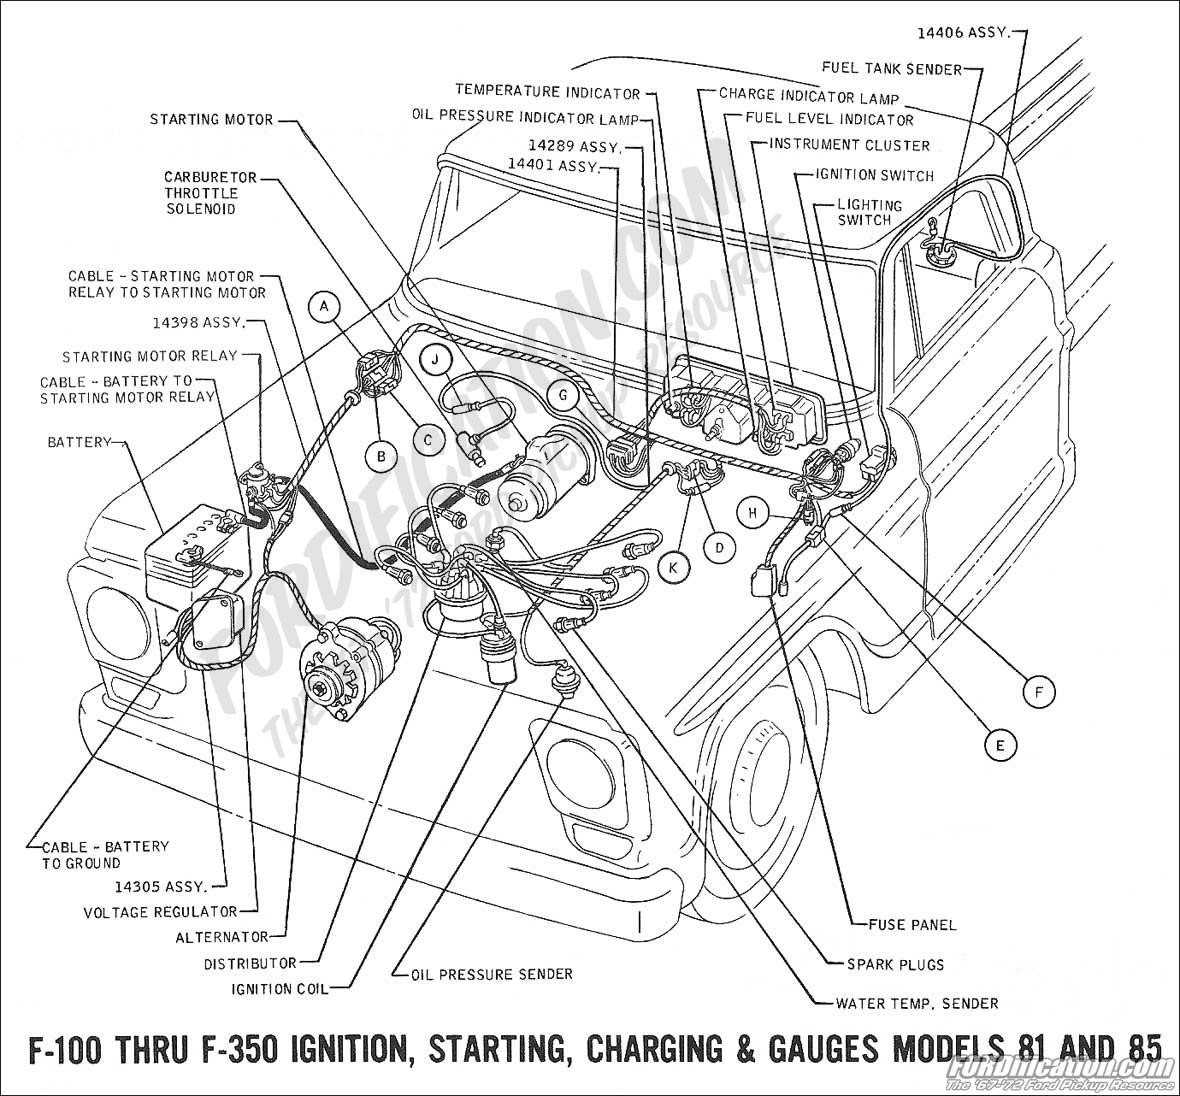 1970 ford f100 wiring diagrams 1970 discover your wiring diagram wiring diagram for 1966 ford f100 pick up